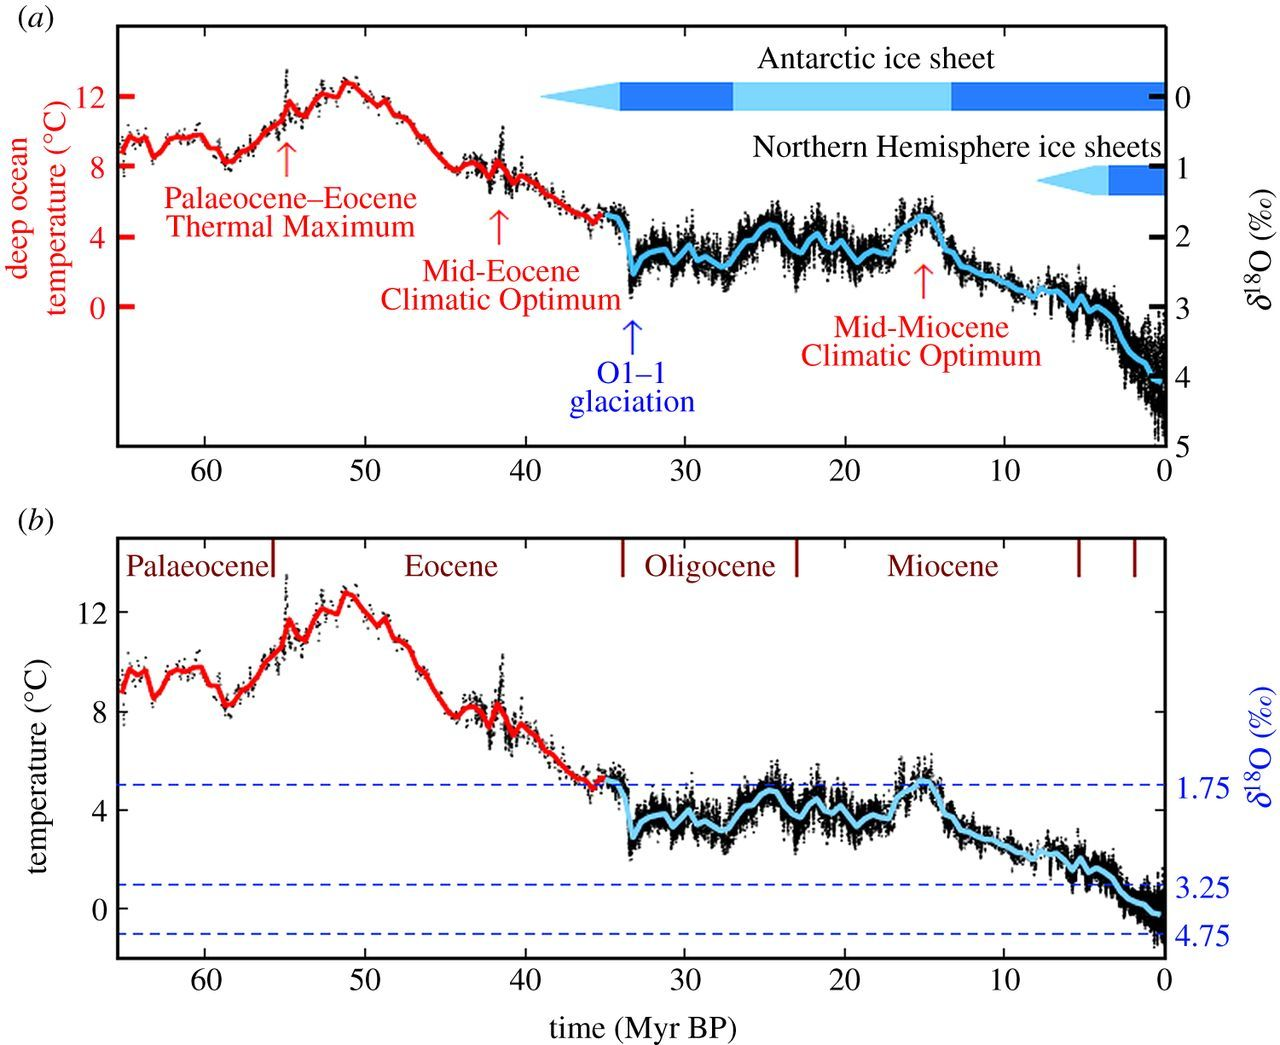 Thermal Maximum and Climatic Optimum in the Mid-Eocene and Mid-Miocene